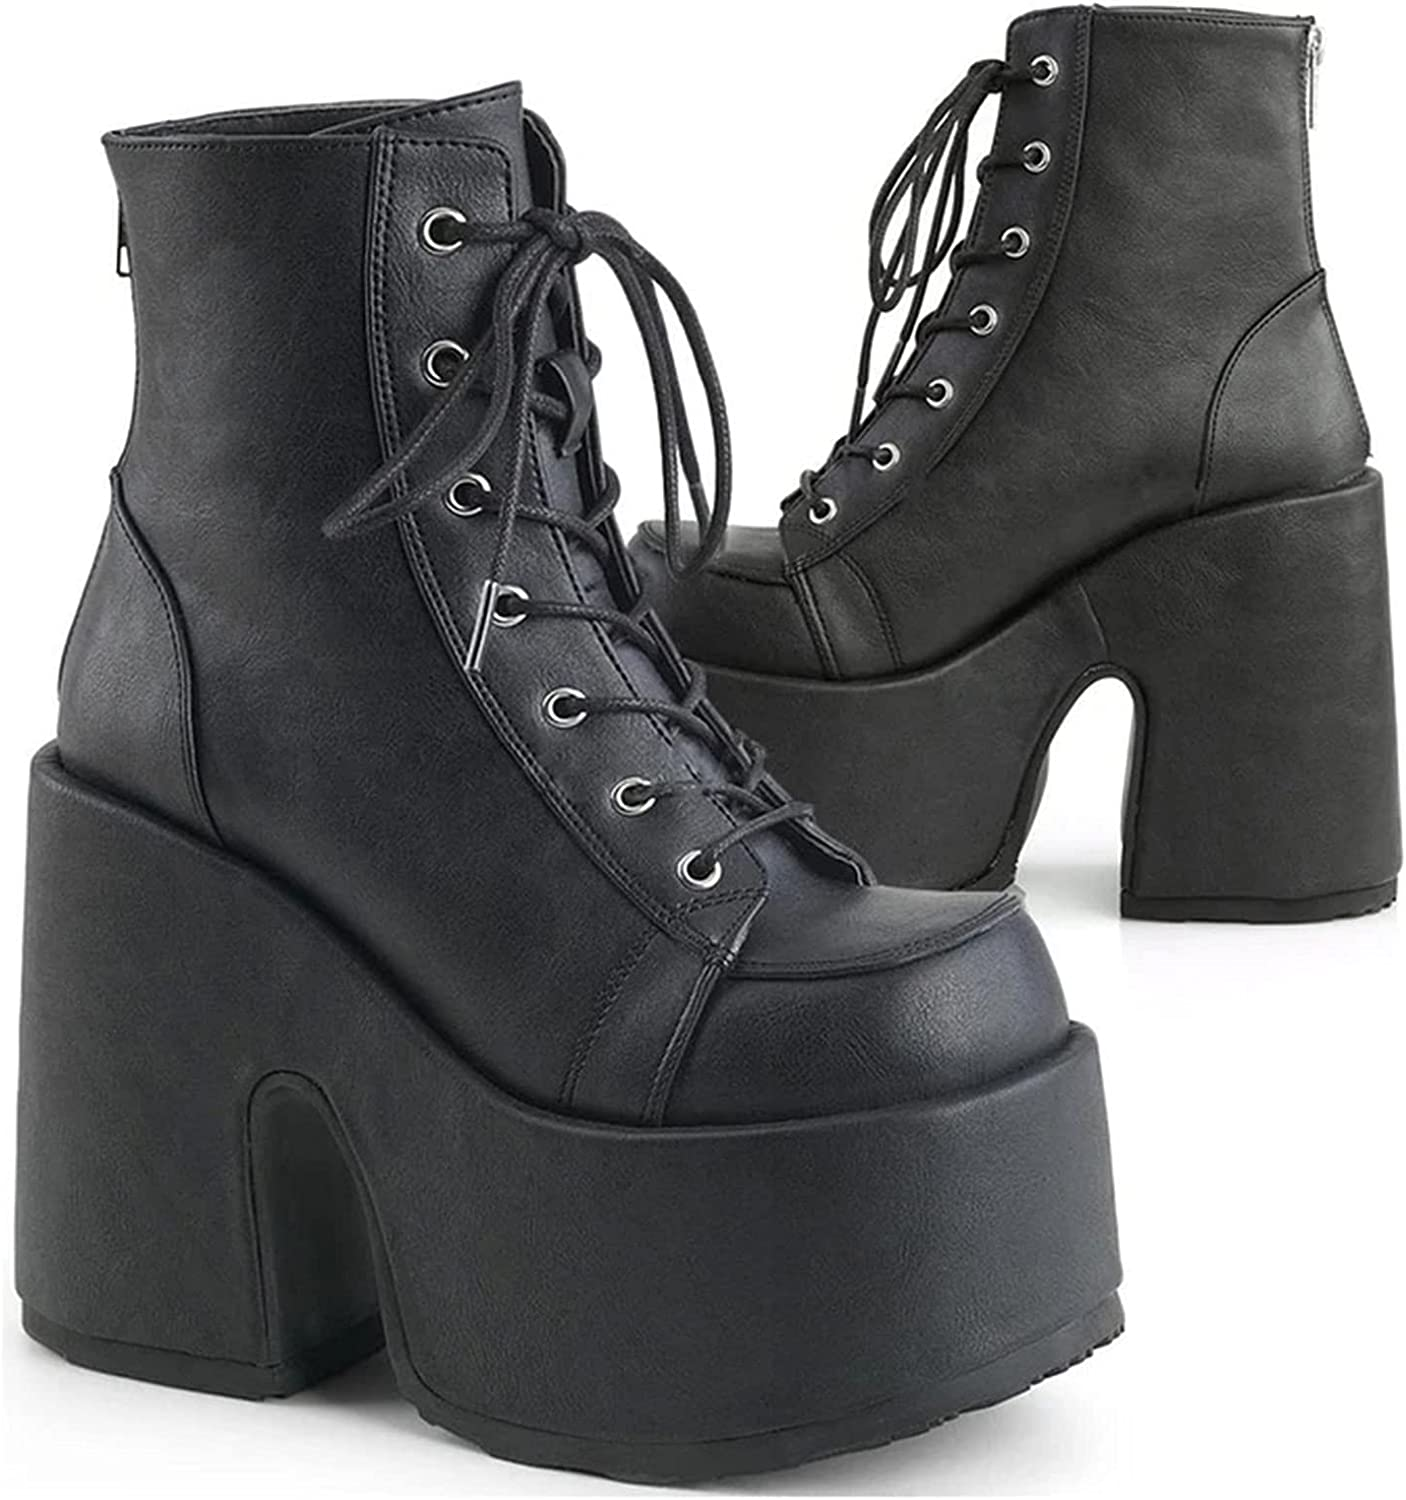 SaraIris Women's Platform Boots Punk Gothic Boots Lace Up Ankle Boots Chain Studded Knight Platform Wedge Boots